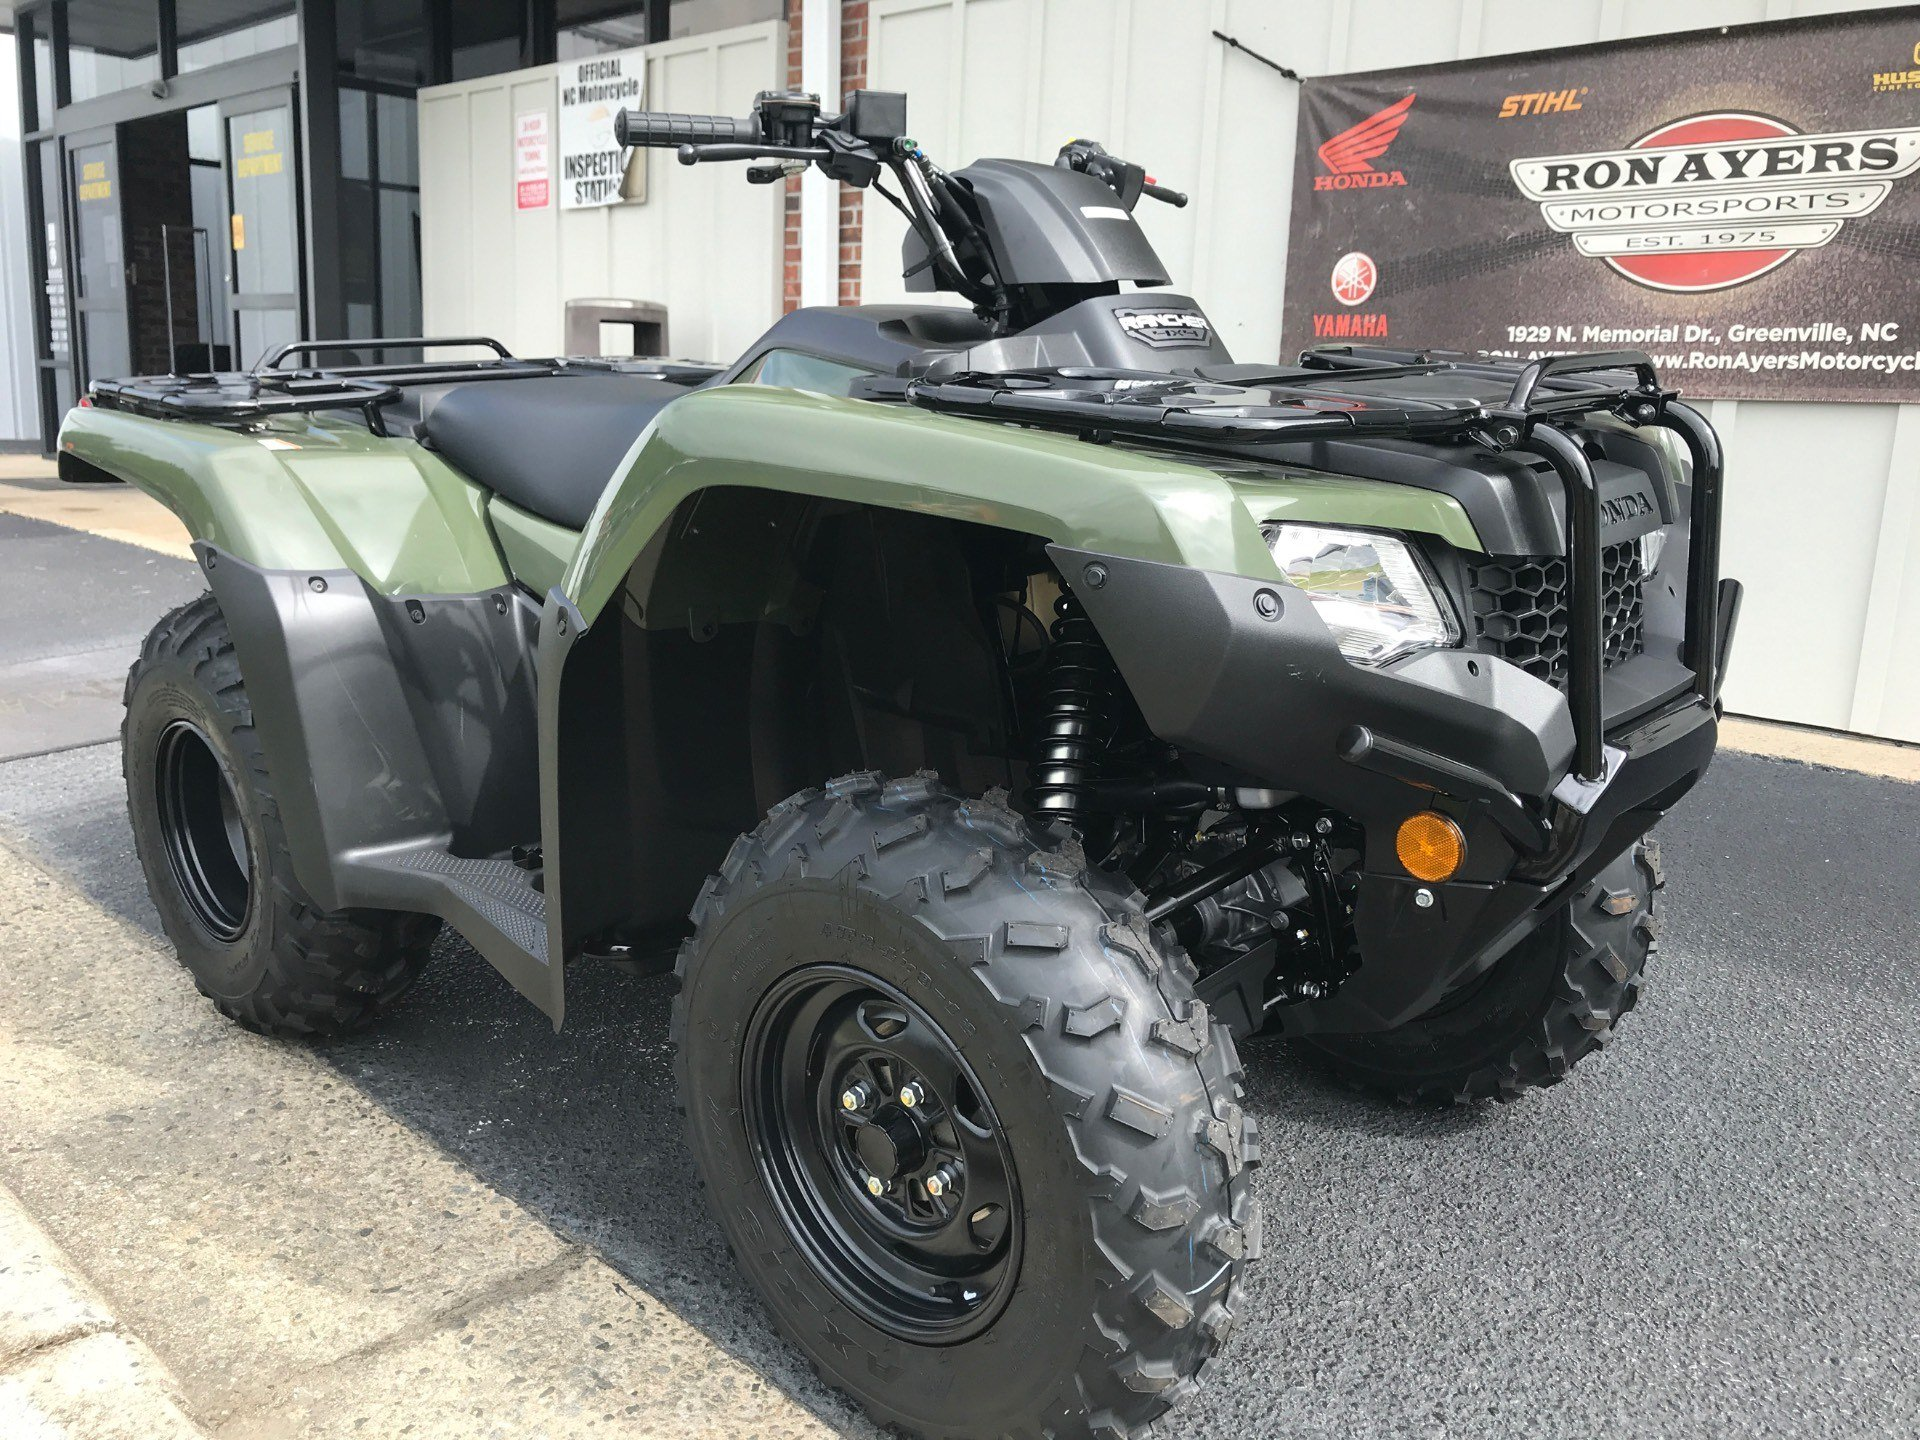 2021 Honda FourTrax Rancher 4x4 in Greenville, North Carolina - Photo 2